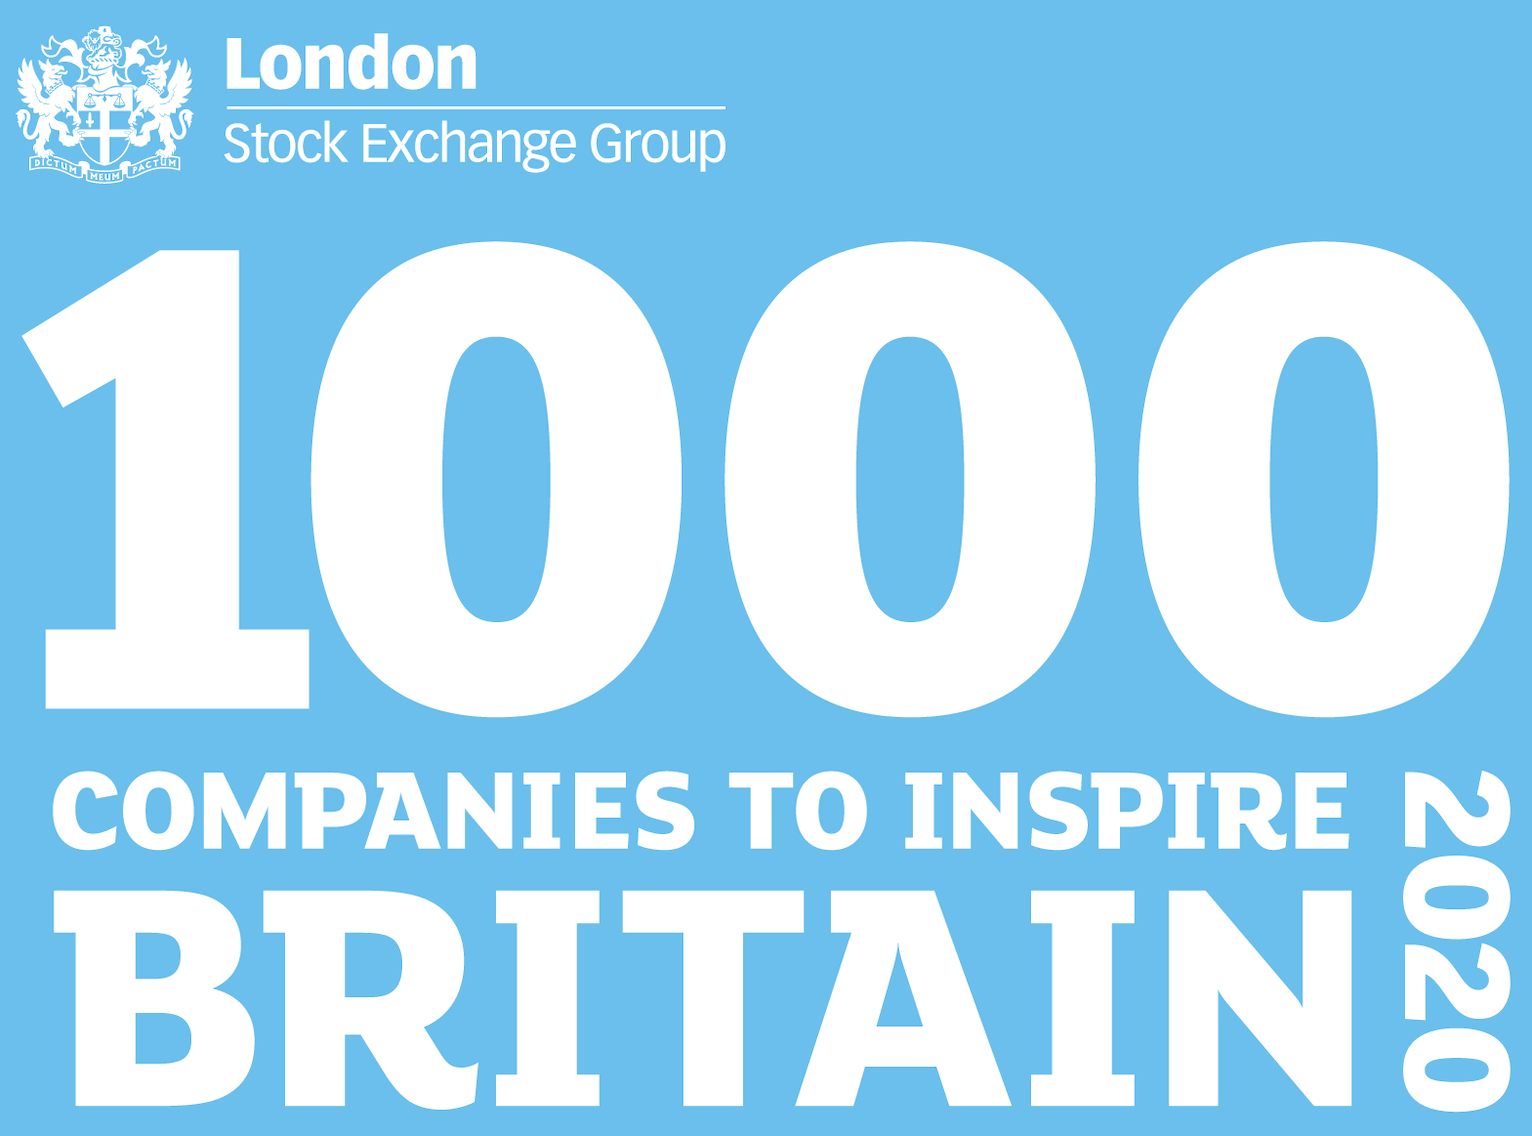 NIC recognised for second consecutive year in the 1000 Companies to Inspire Britain